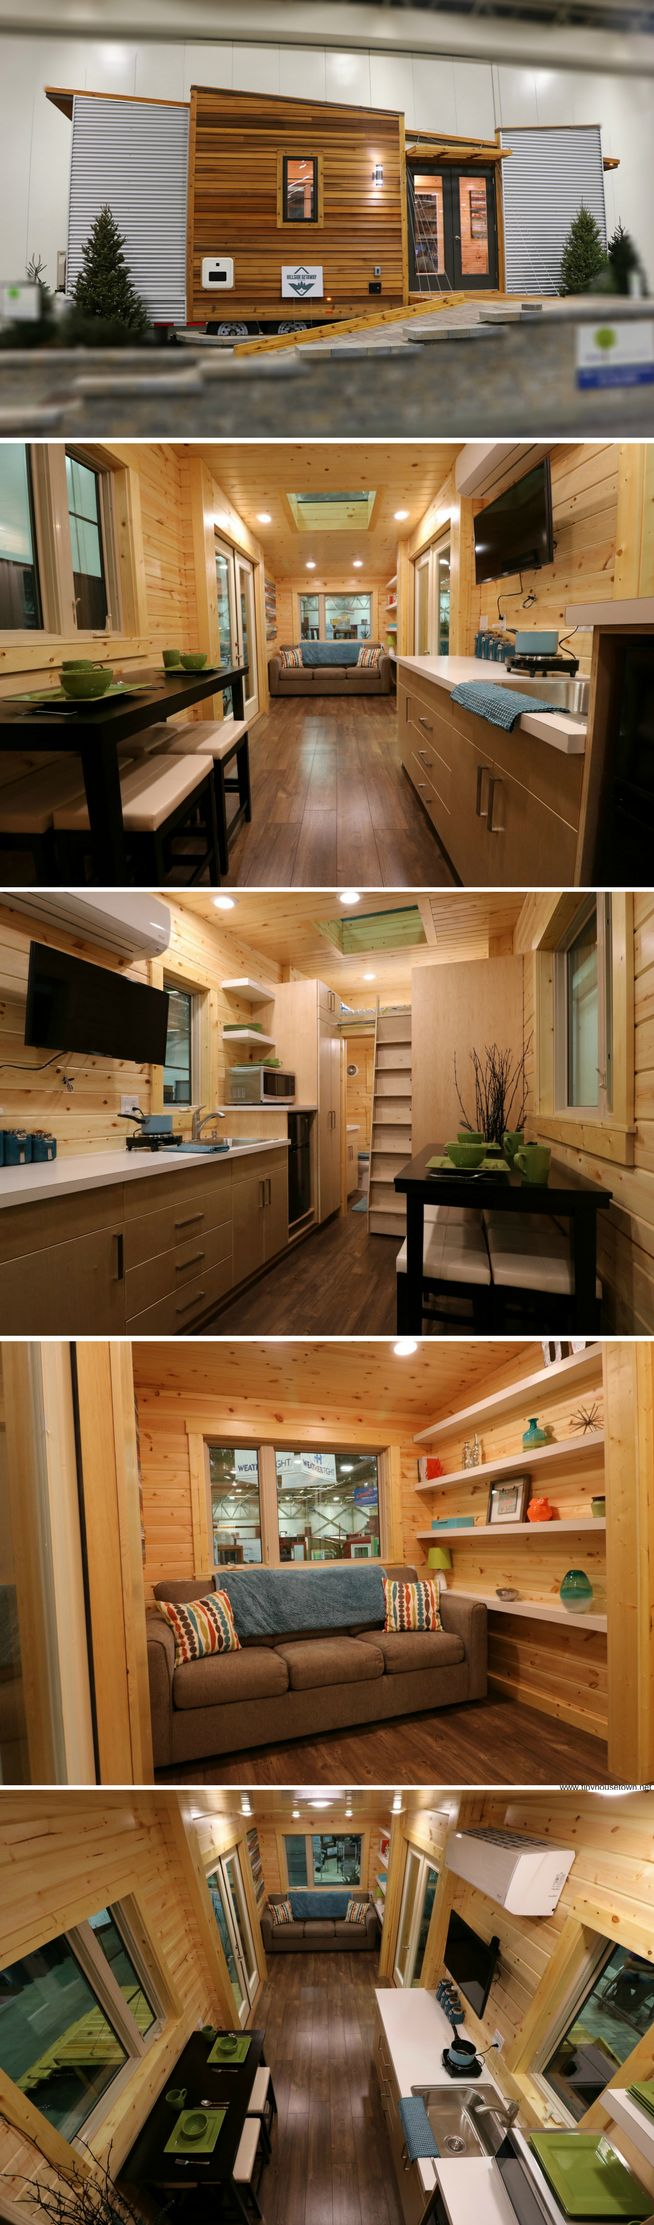 The Dragonfly tiny house from Hillside Getaway